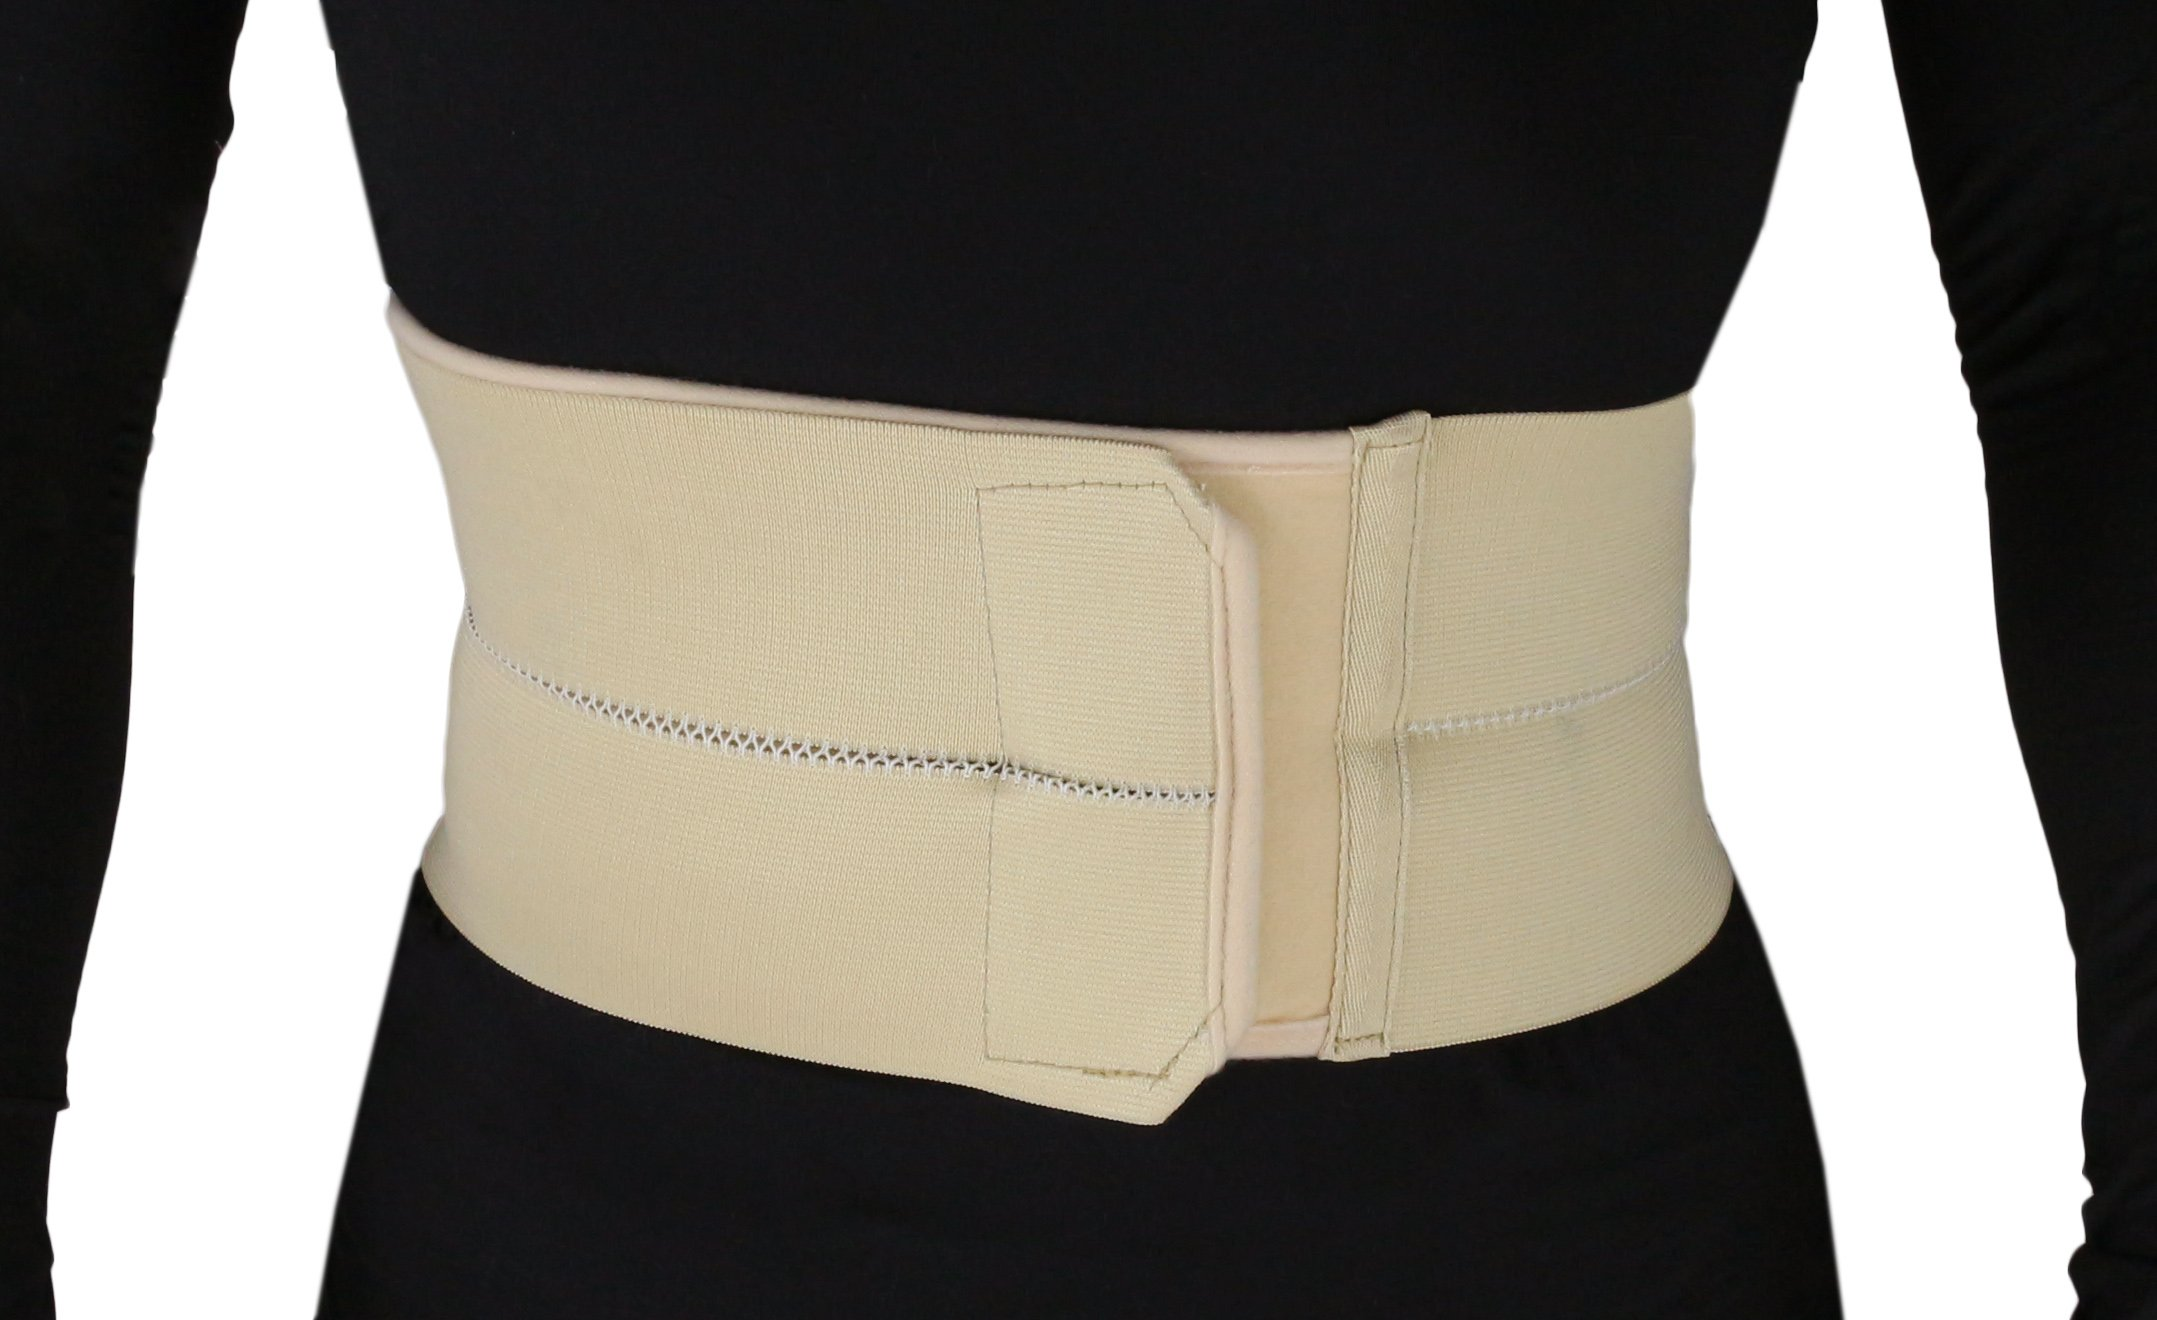 ObboMed MB-2200L 2-Panel Elastic Postpartum Girdle/Postoperative Abdominal Binder Belt, Injuries support, Post pregnancy, Post-Surgical, Hernia, Belly Wrap Brace–Trimming Waist (L: 39 – 43 inches)